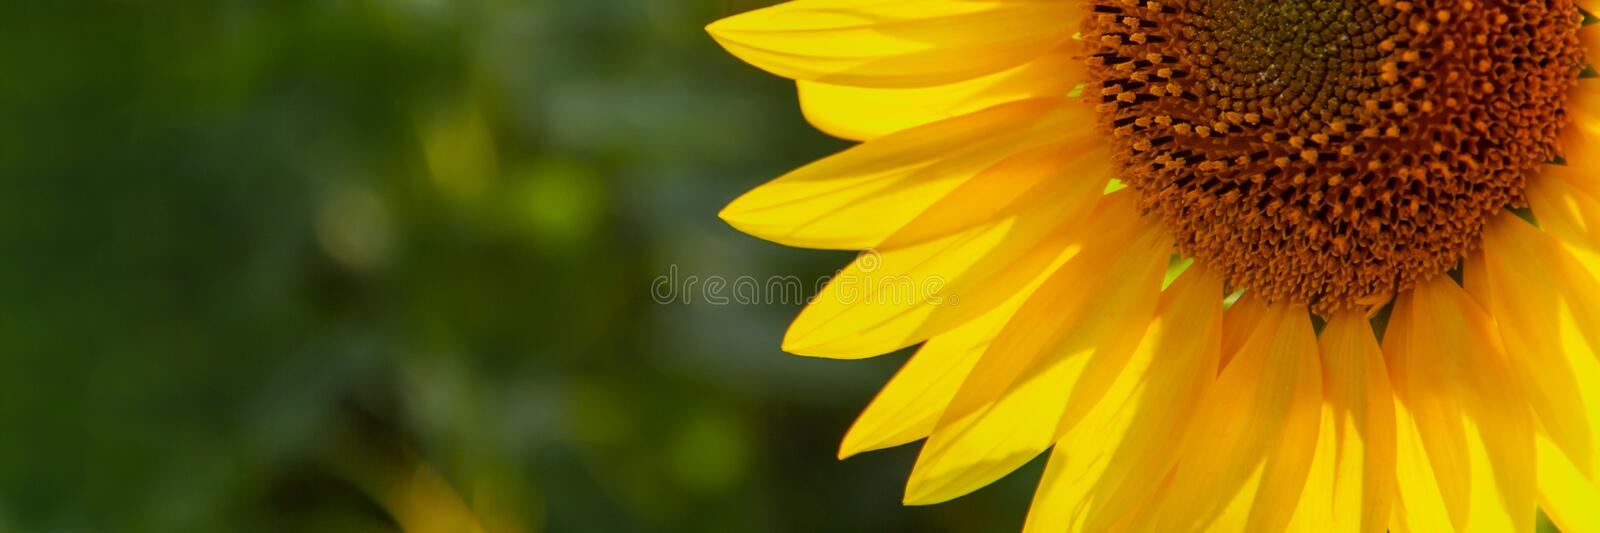 Sunflower natural background. Sunflower blooming. Agriculture field royalty free stock photography